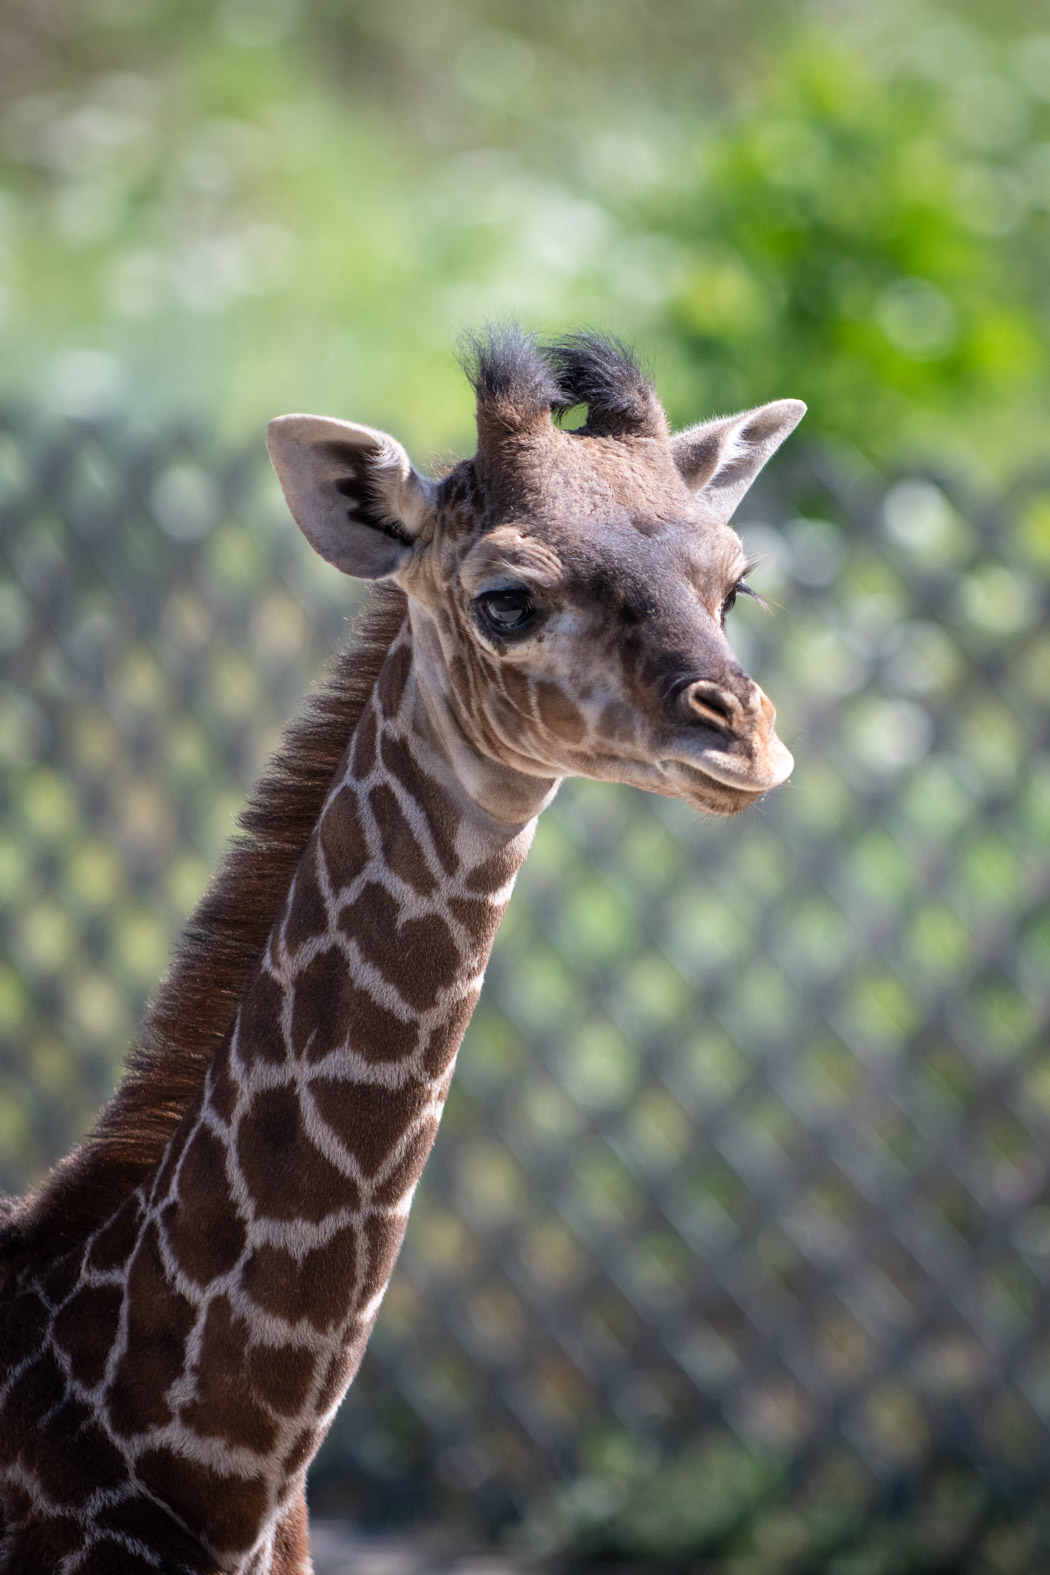 <p>The Columbus Zoo and Aquarium said beginning Friday, Aug. 14, guests will have the chance to view the endangered male Masai giraffe that was born on June 28 to mother, Zuri and father, Enzi. (Columbus Zoo and Aquarium)</p>